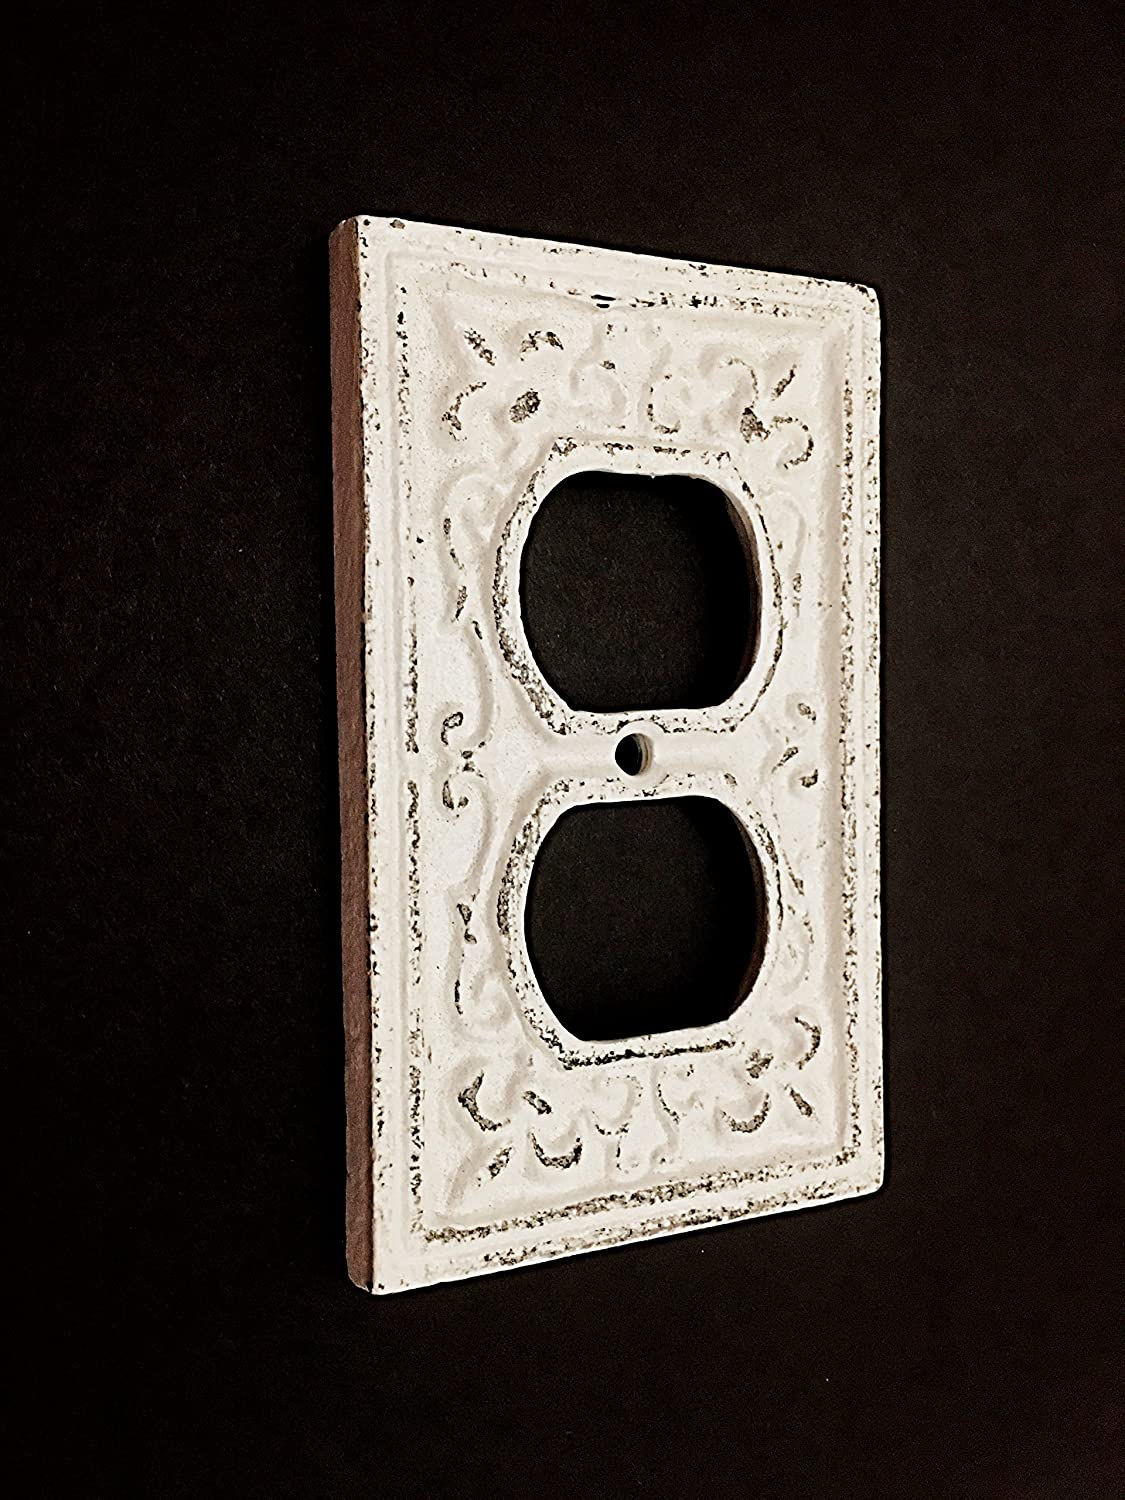 Cast Iron Decorative Electrical Outlet Plate, Plug In Cover, Shabby Chic Outlet Cover, Pick Color